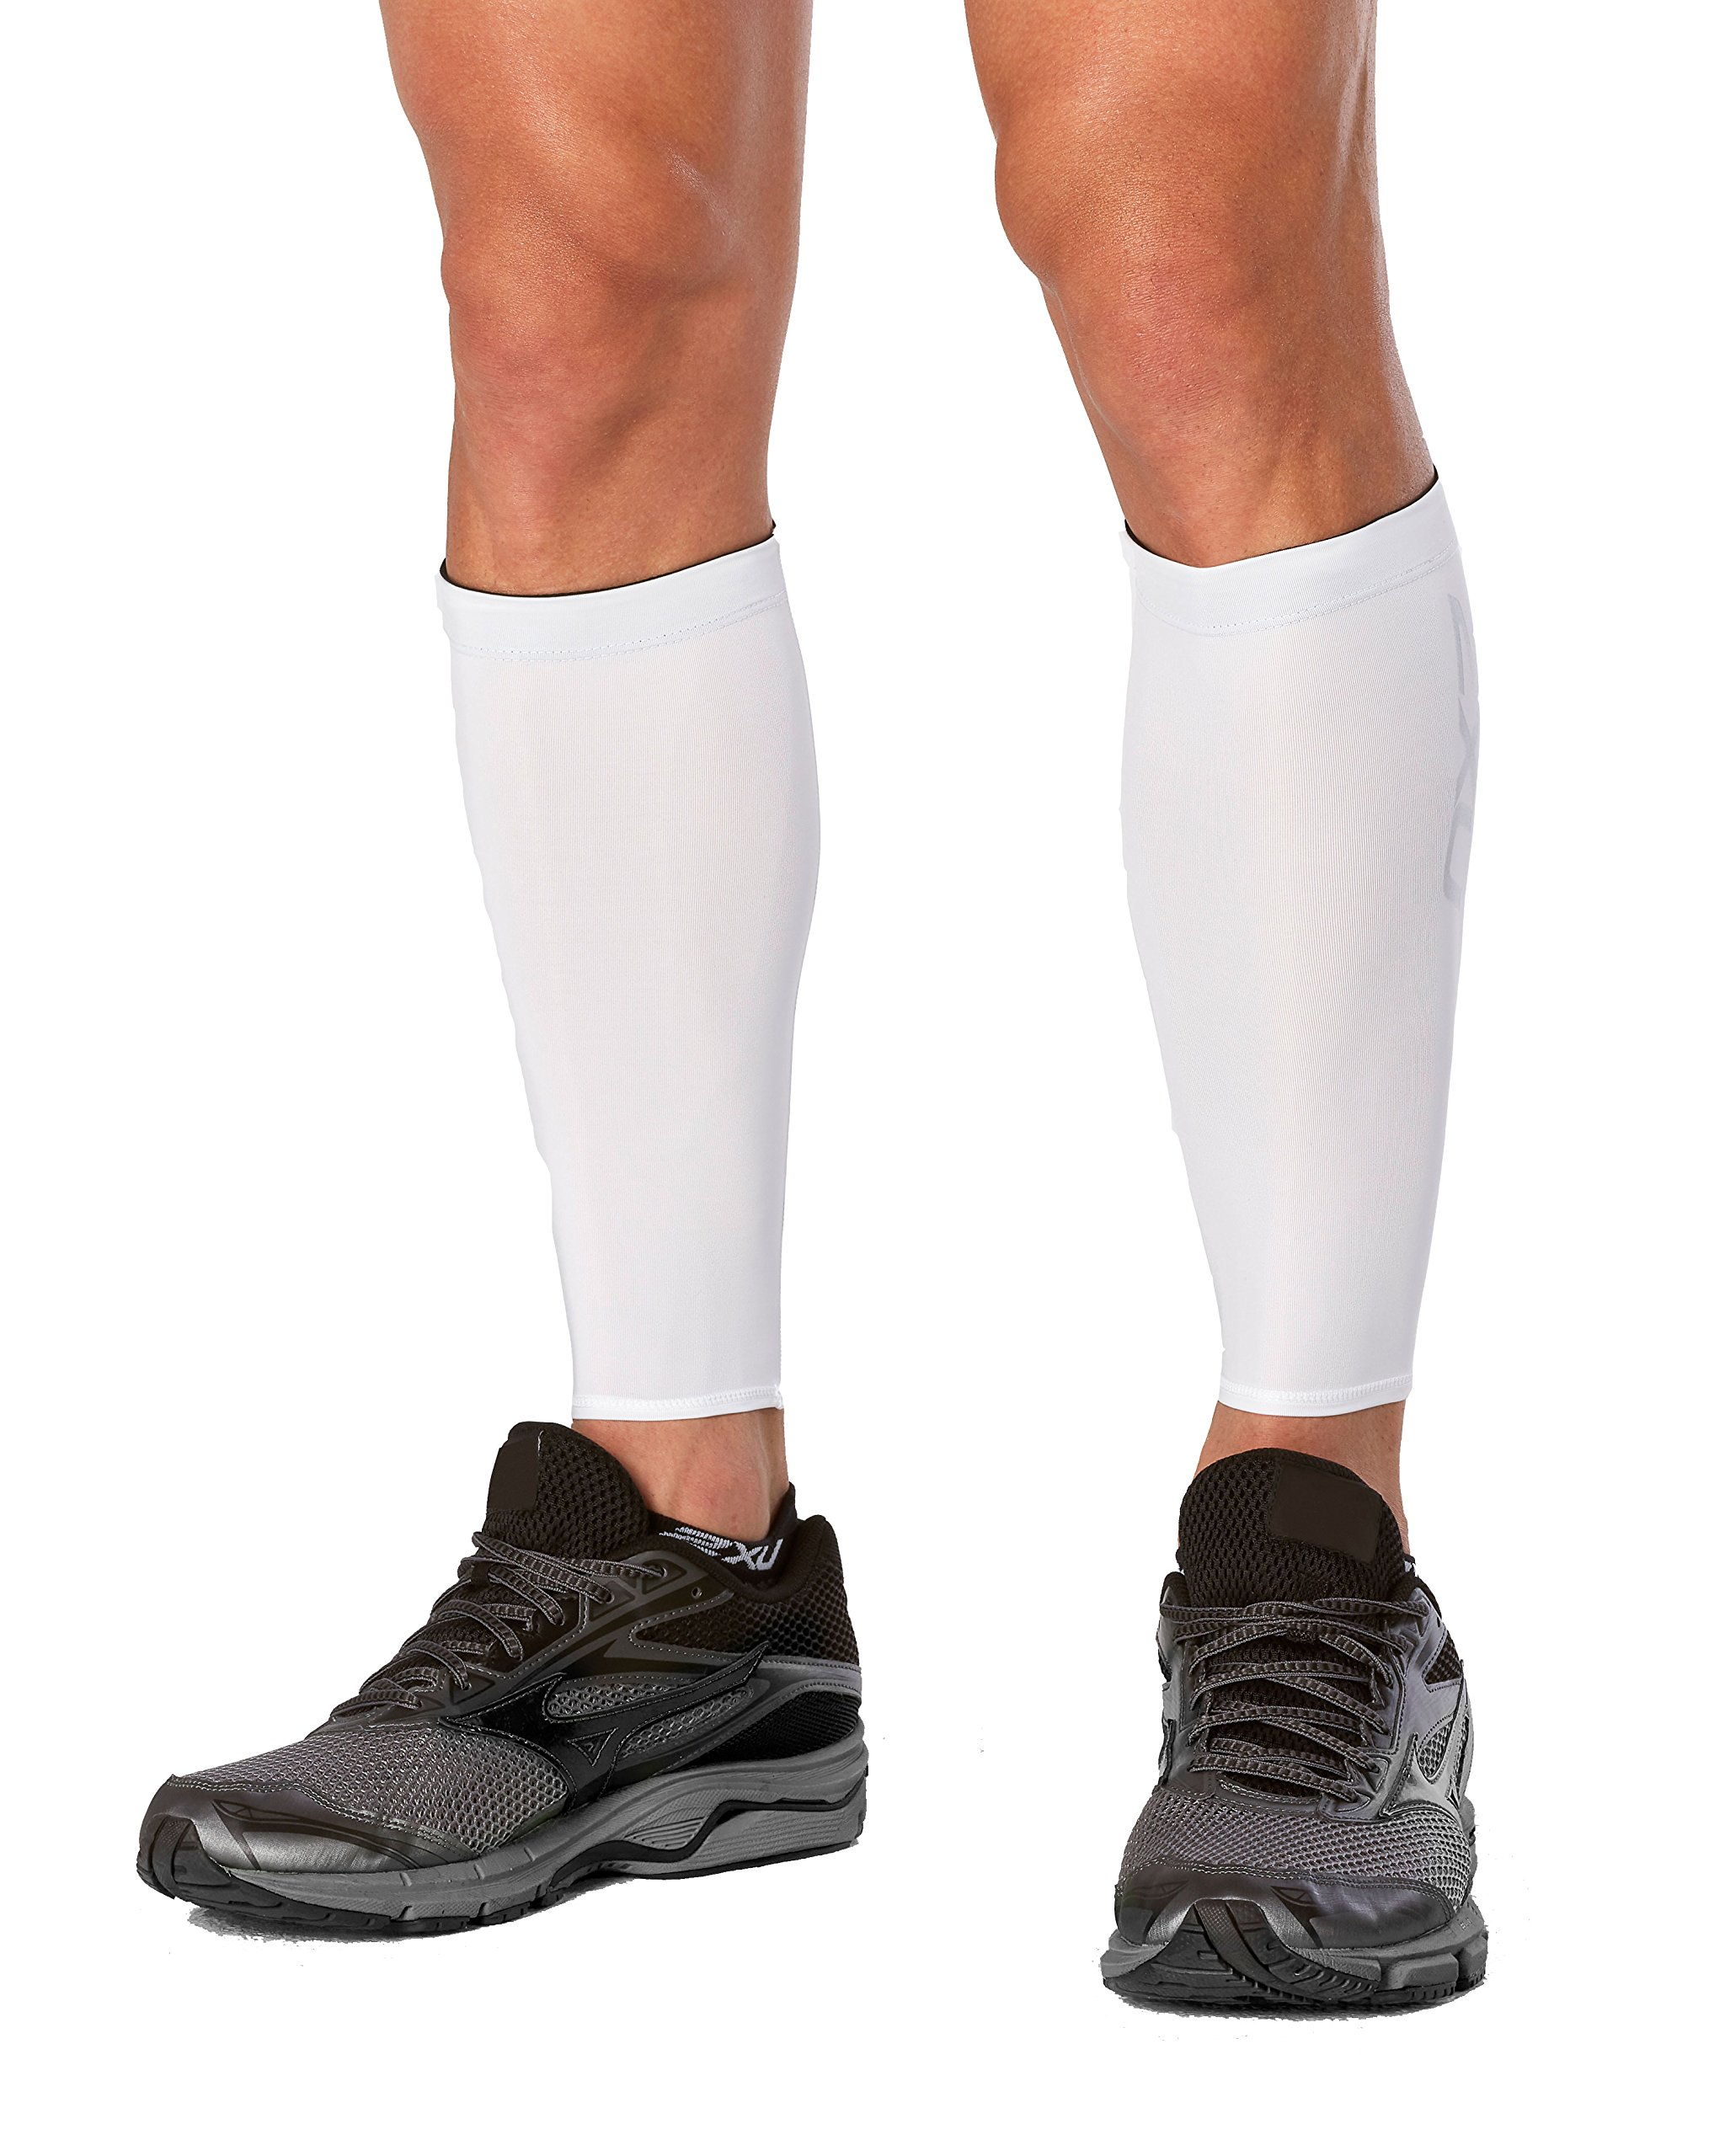 2XU Compression Calf Guards, White/White, Medium